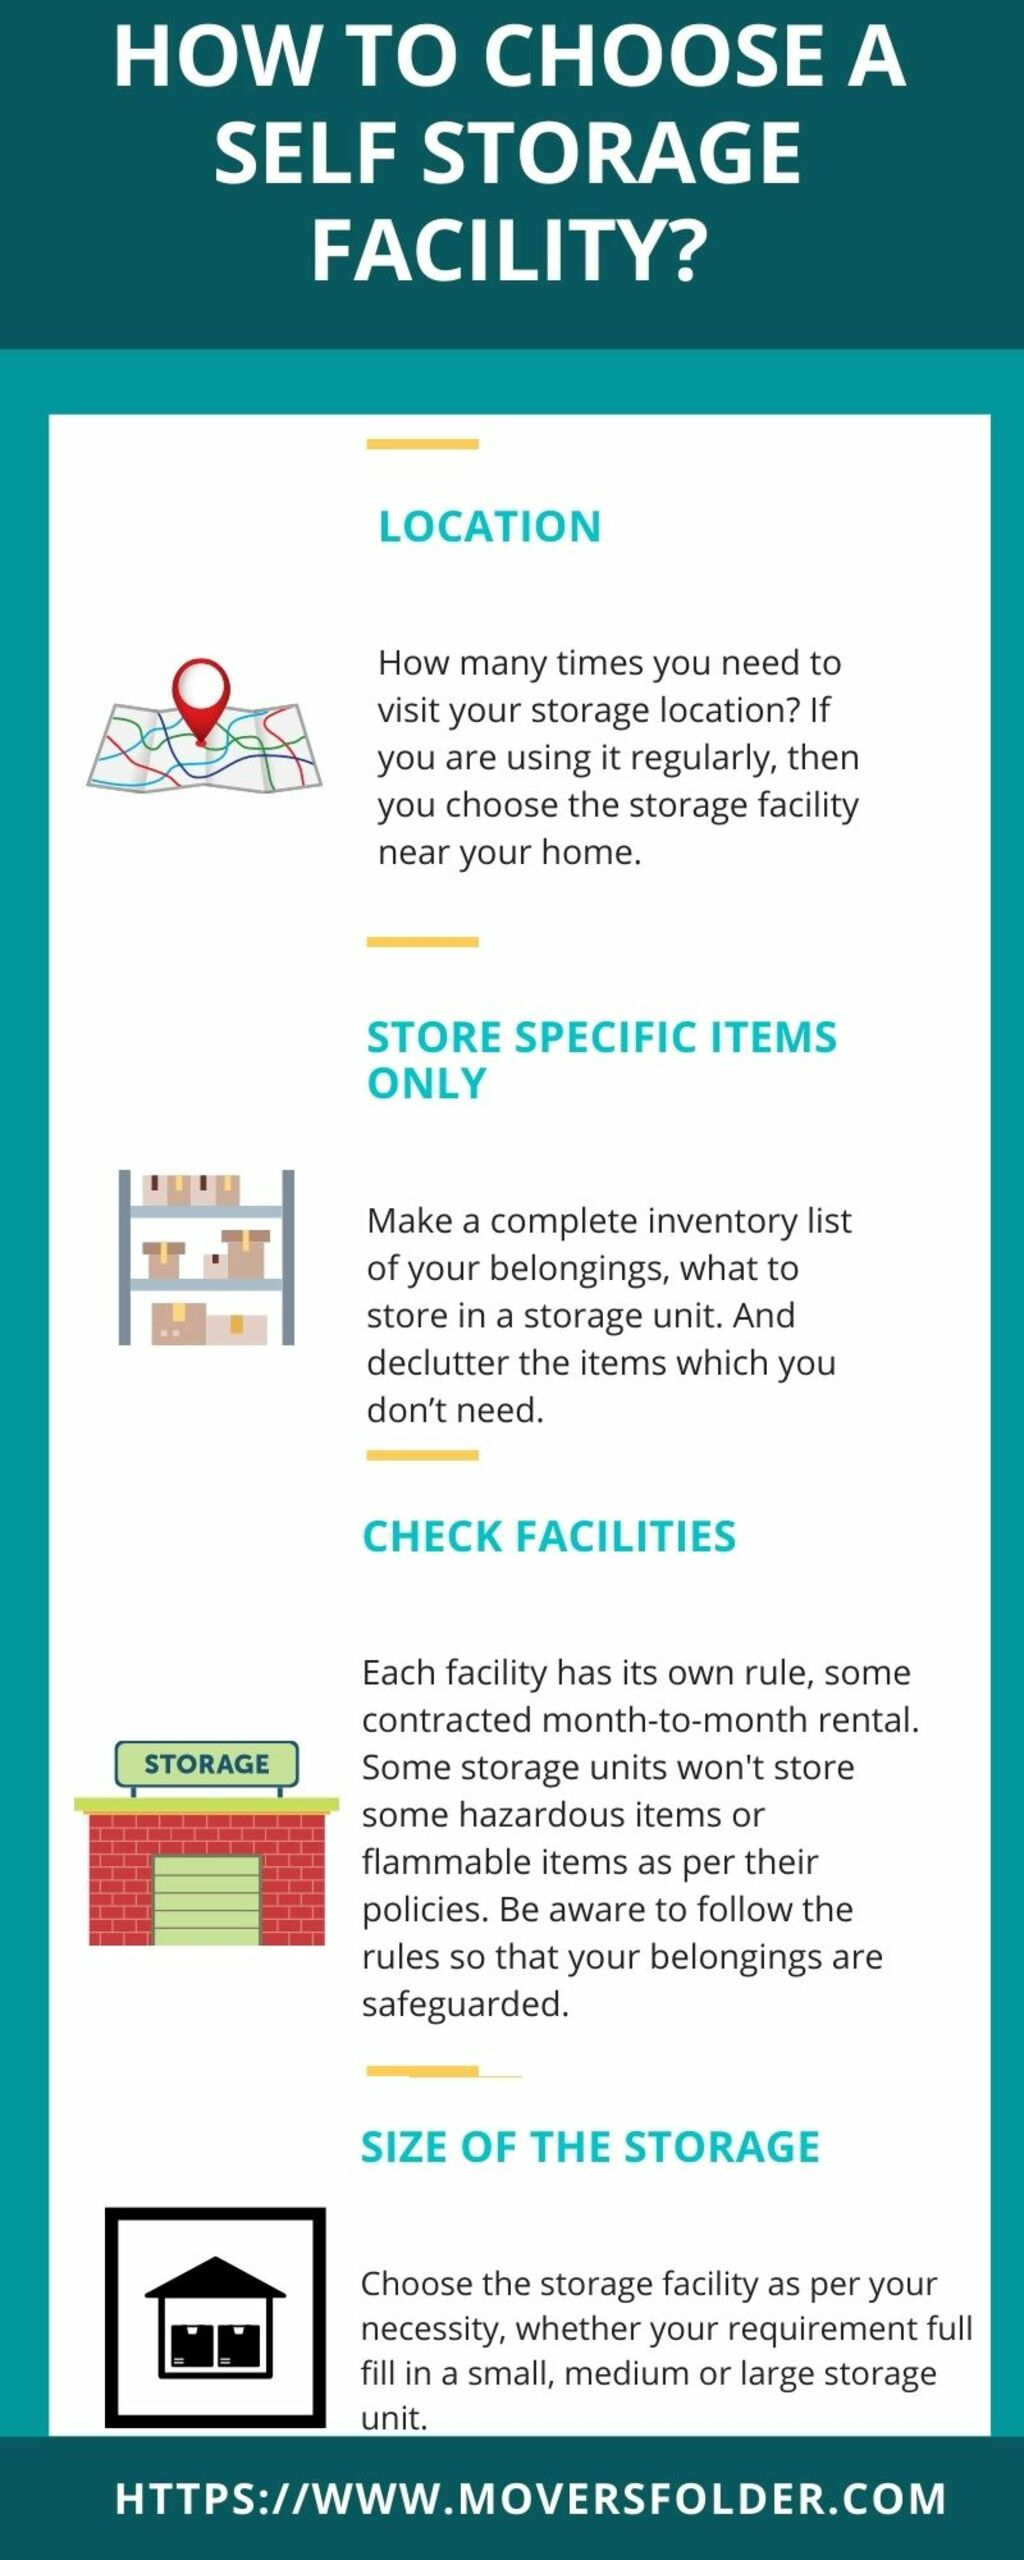 How to Choose a Self Storage Facility? via MoversFolder.com